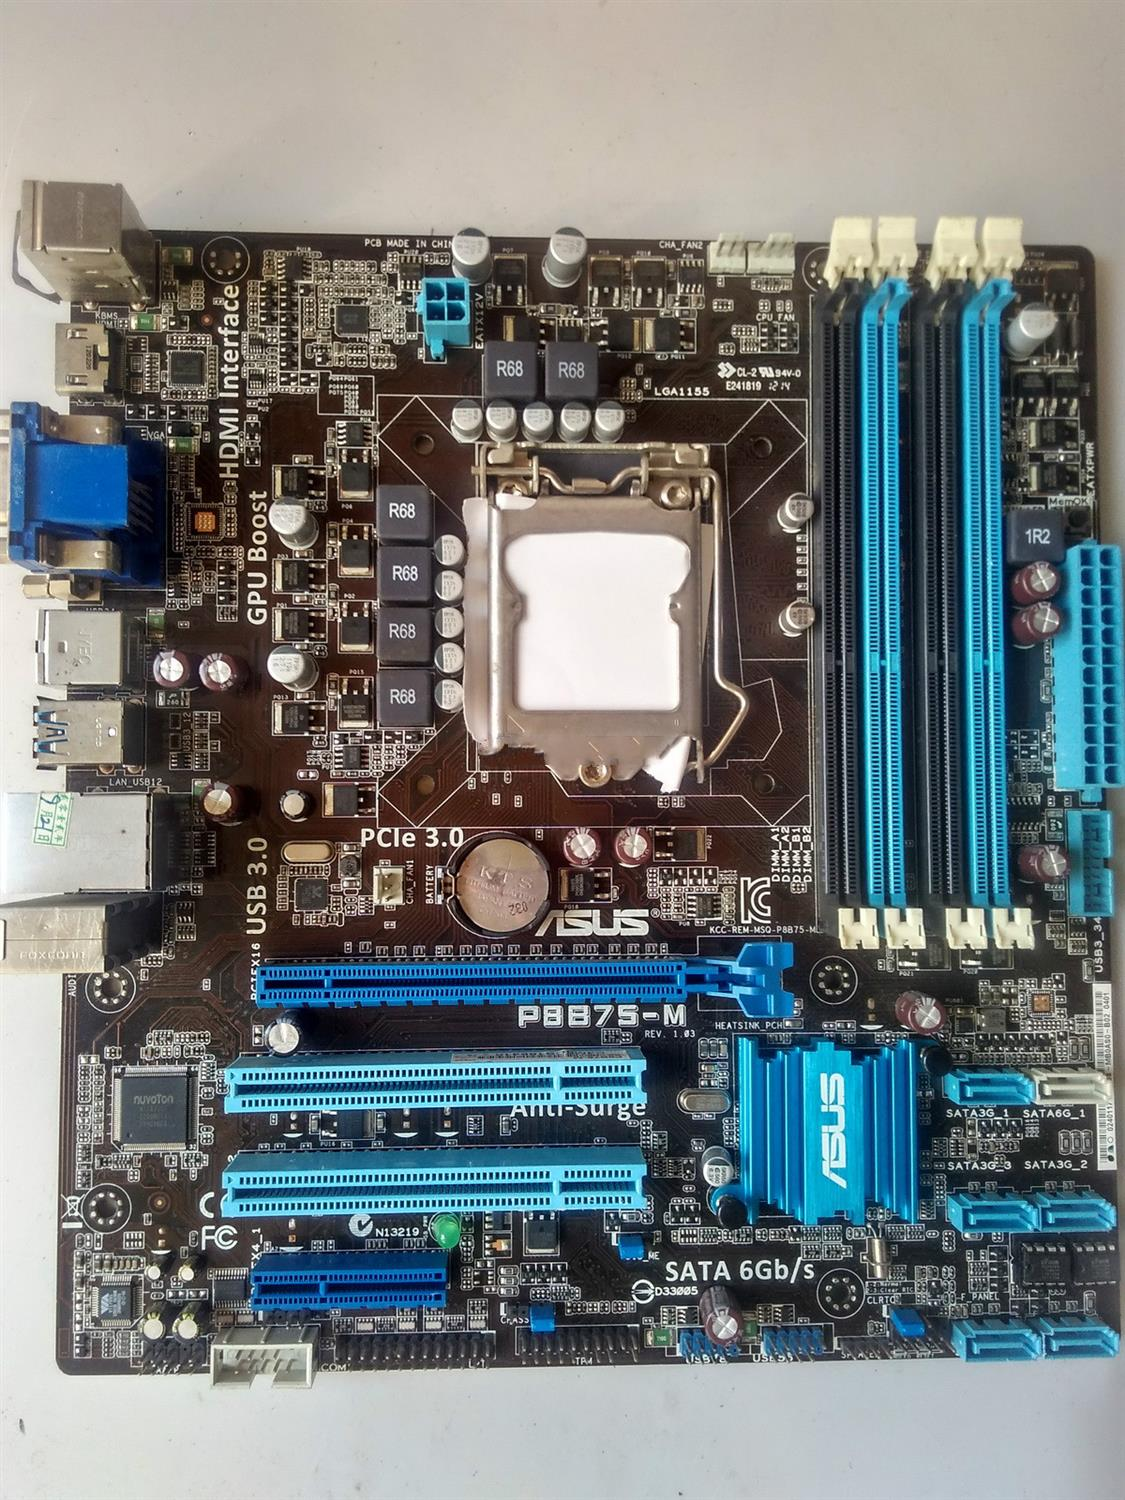 Used,for Asus P8B75-M Motherboard B75 Socket LGA 1155 i3 i5 i7 DDR3 SATA3 USB3.0 asus p8b75 m desktop motherboard b75 socket lga 1155 i3 i5 i7 ddr3 sata3 usb3 0 uatx on sale